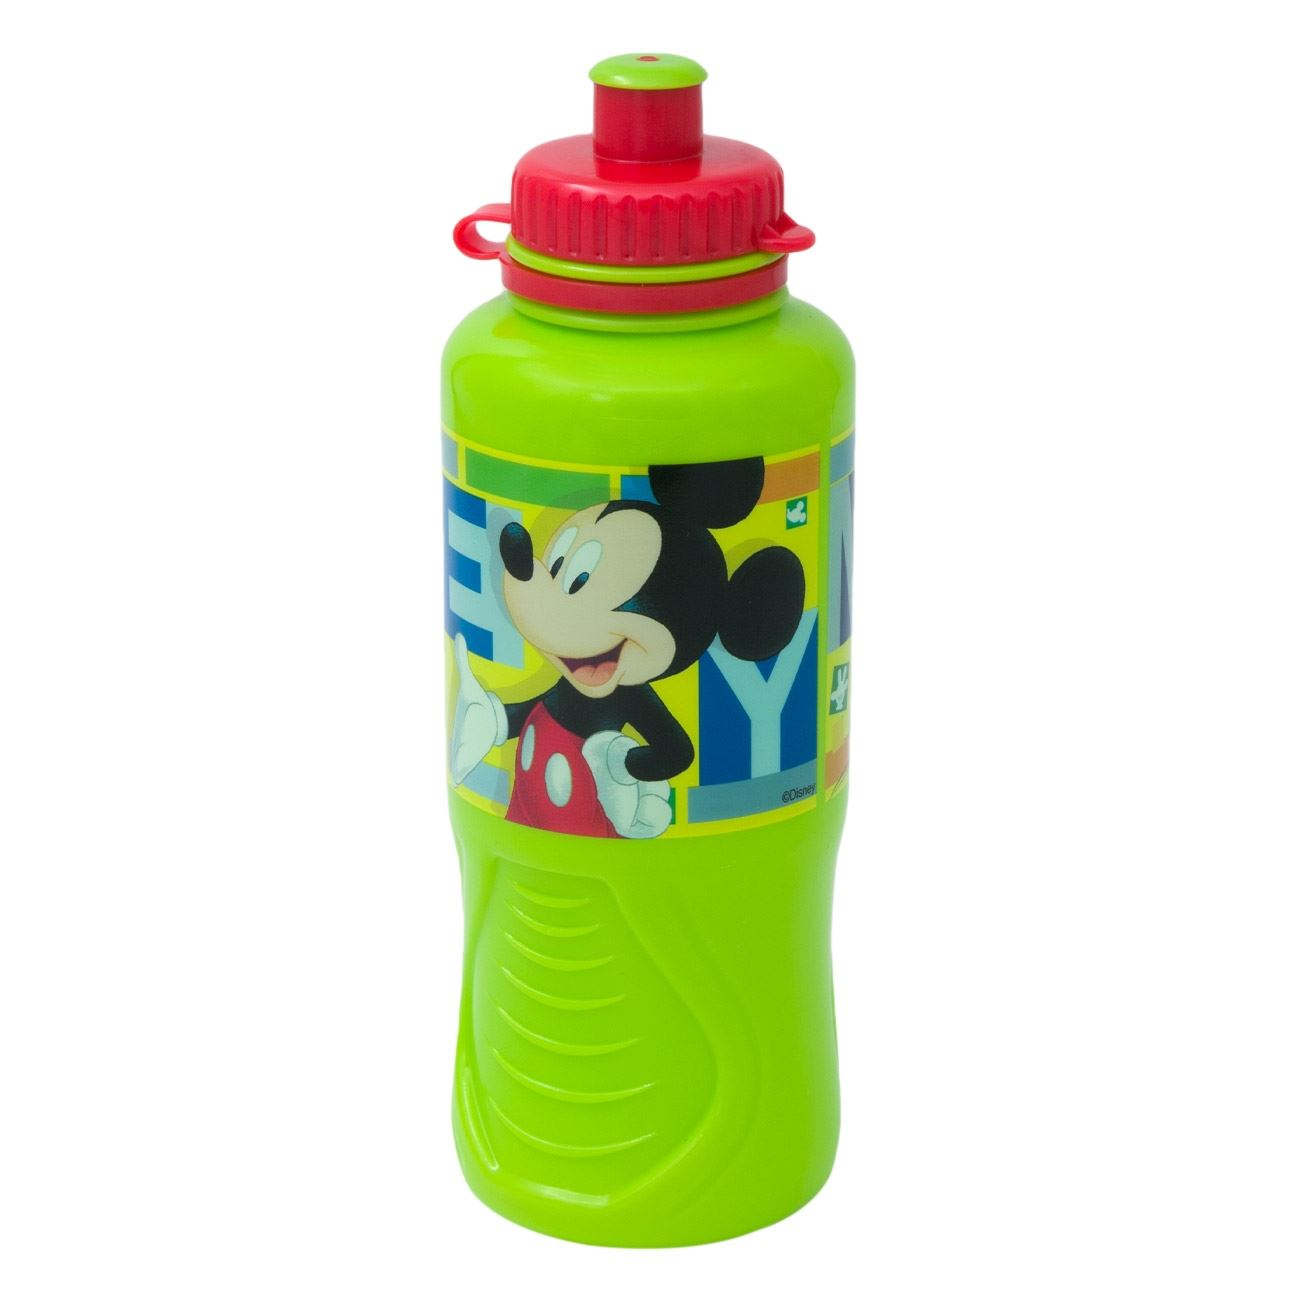 Mickey egér kulacs 400 ml